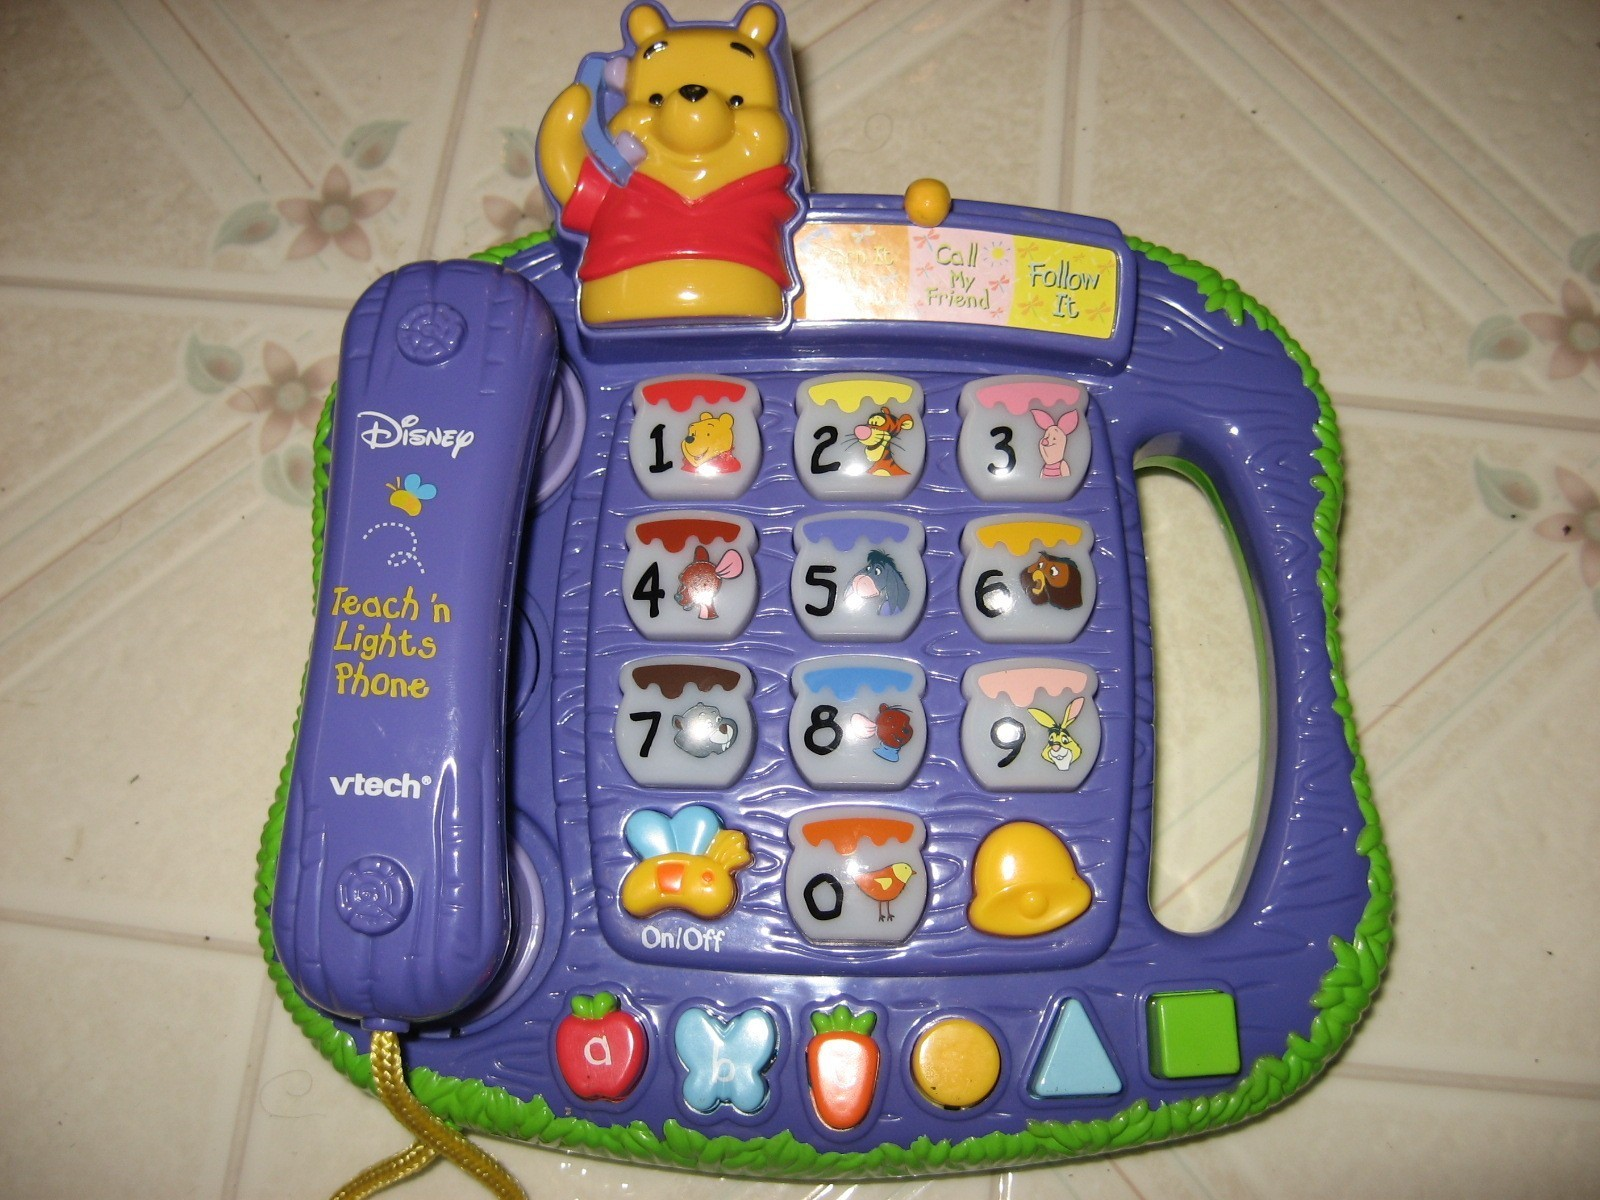 Superb img of VTech Pooh Teach 'n Lights Phone TOYBOX Baby Toys Rent Rental Mainan  with #AA7D21 color and 1600x1200 pixels